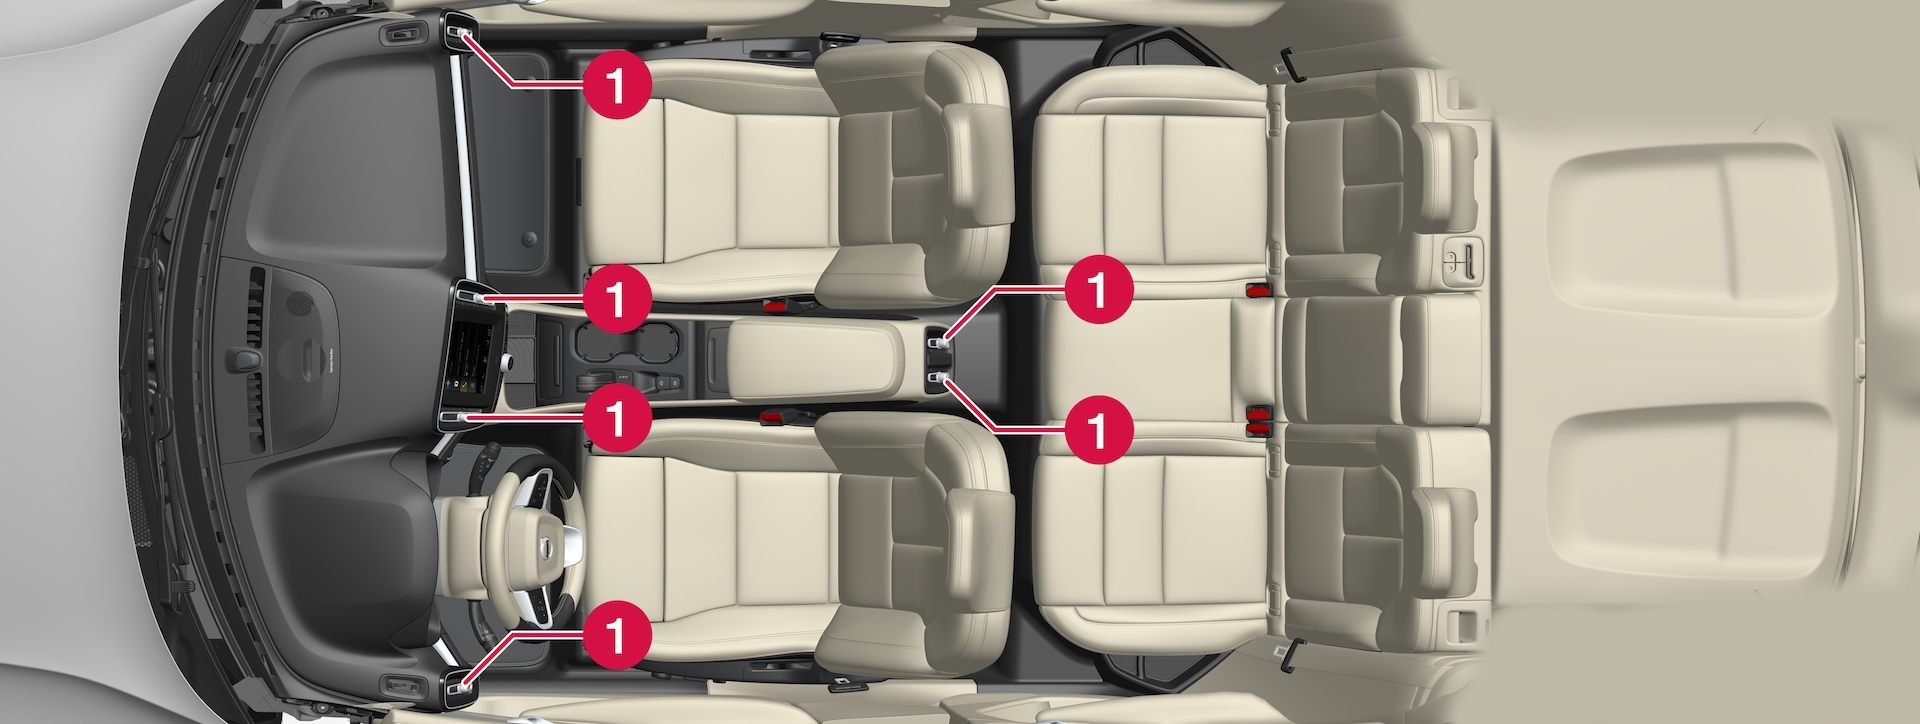 P6-1846-XC40H–Climate–Air vents regulation overview